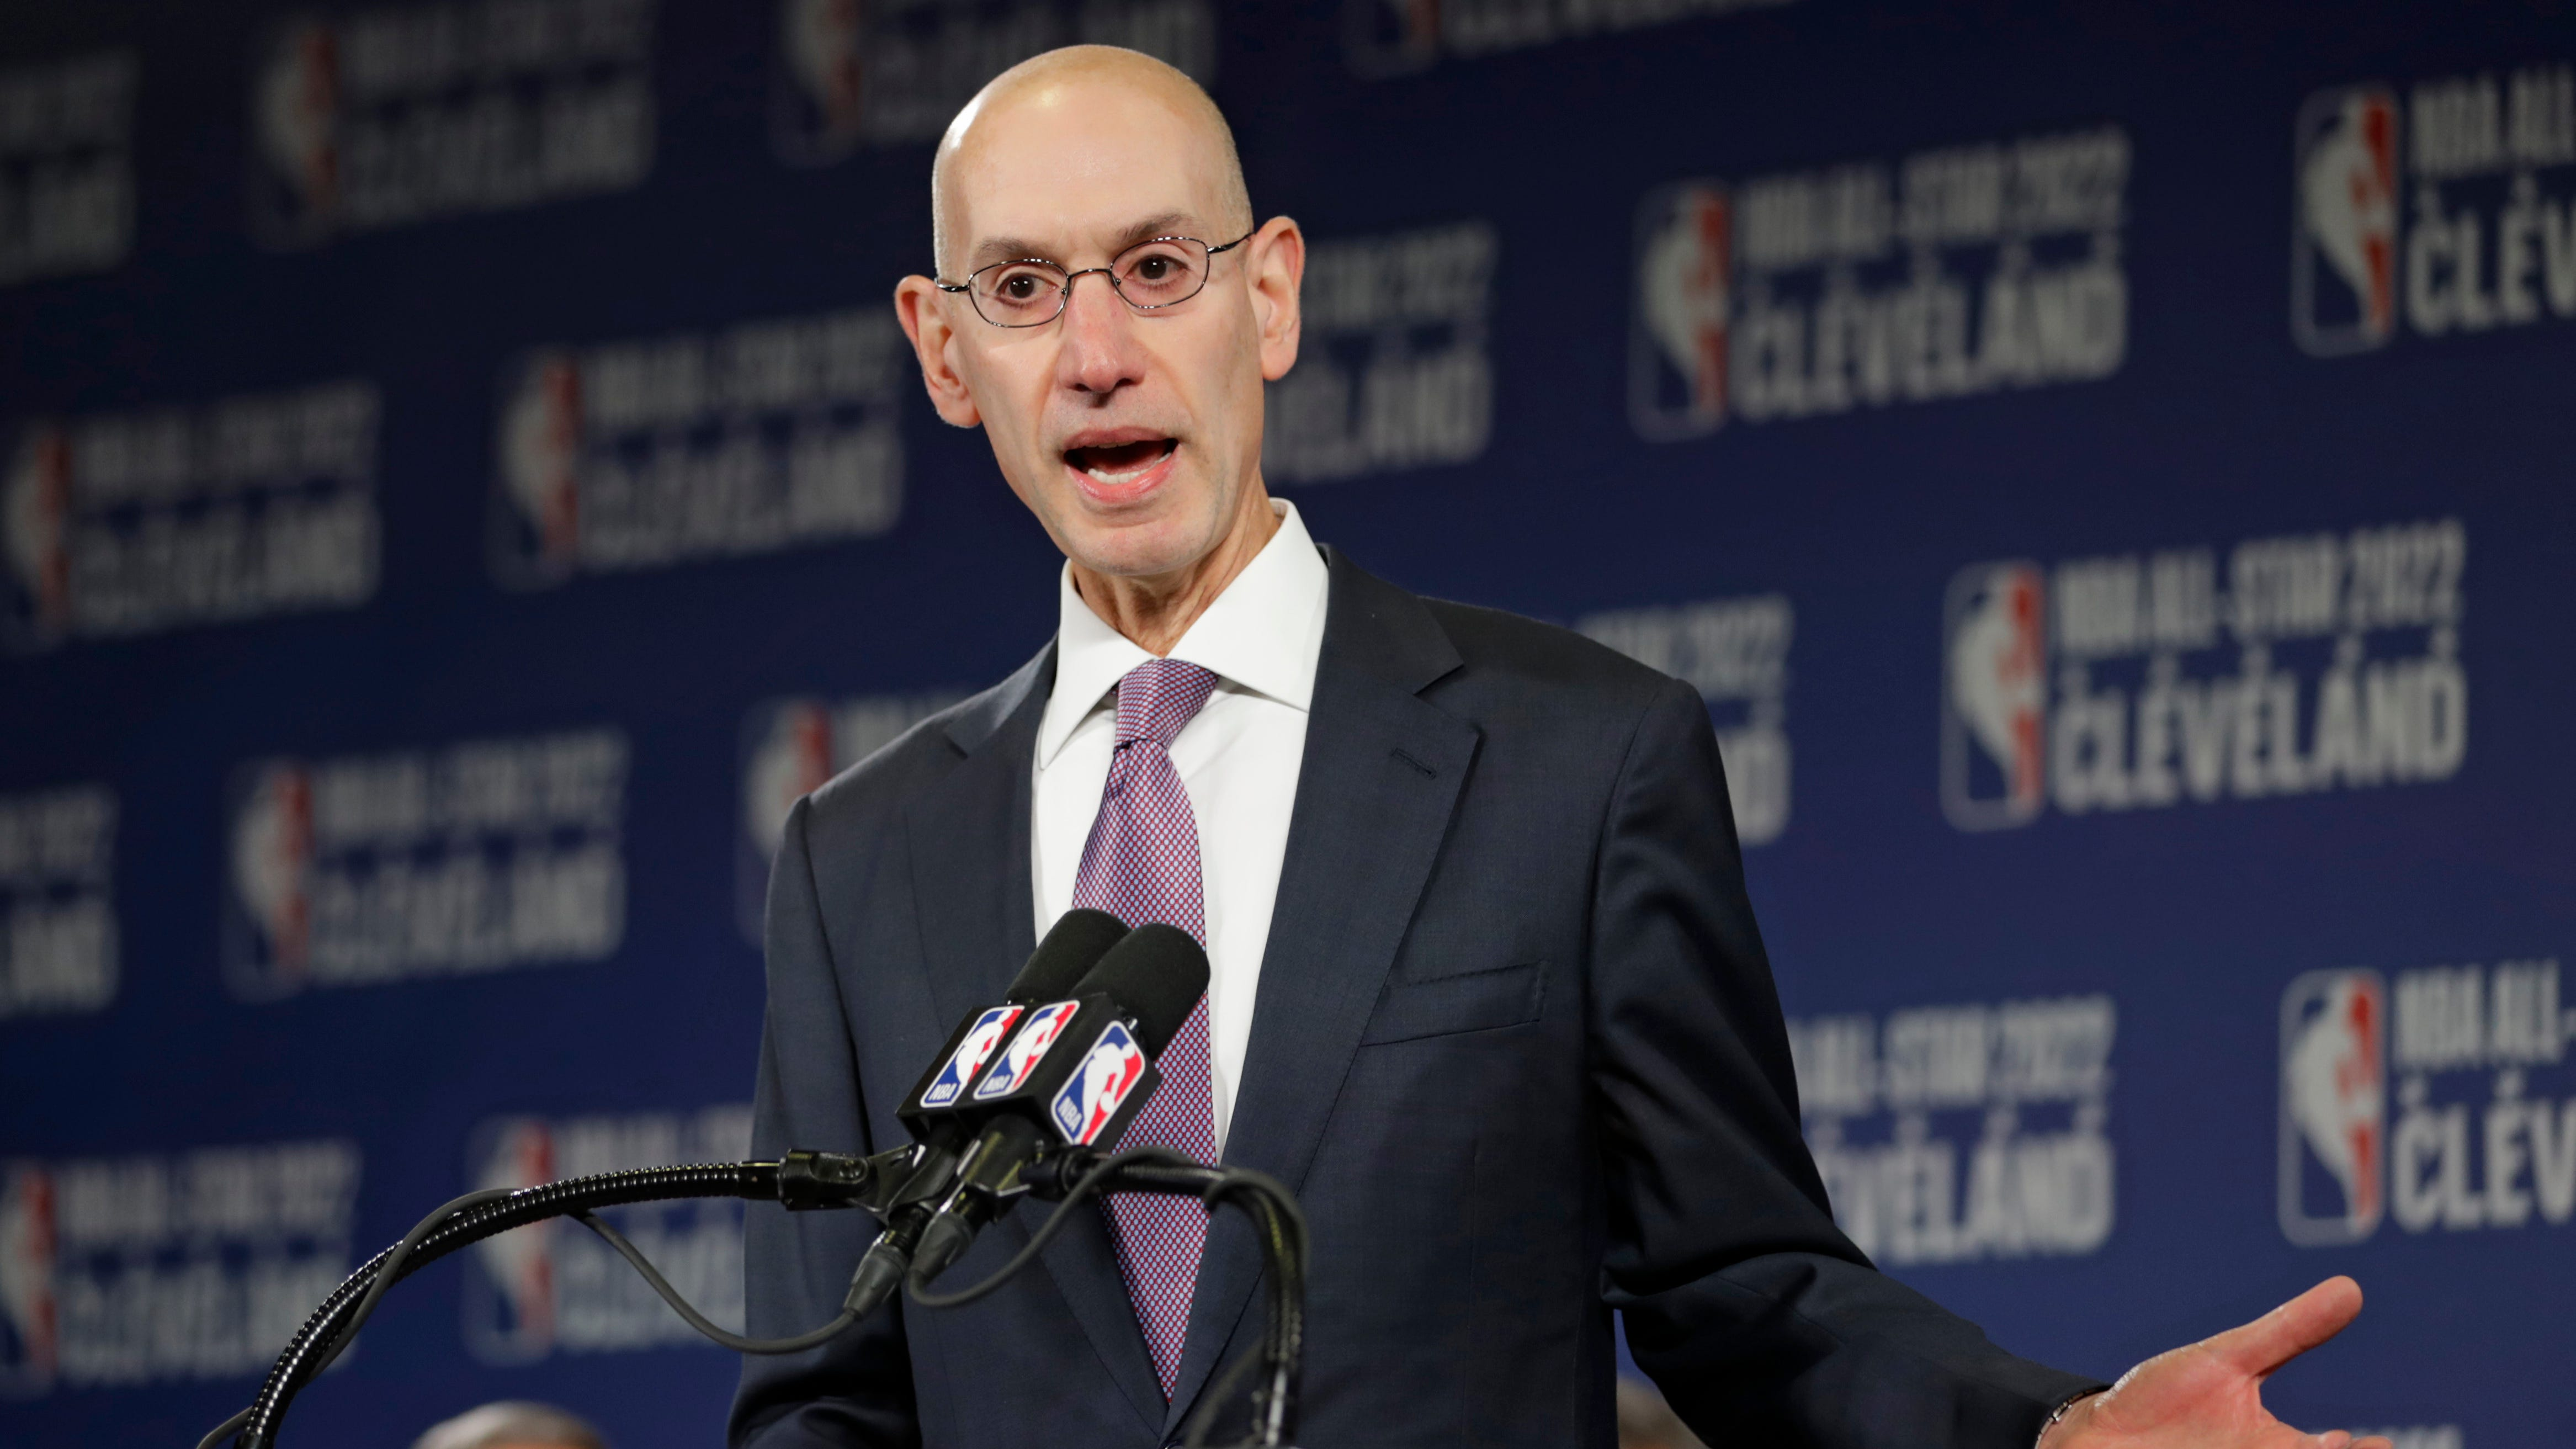 NBA Commissioner Adam Silver announces that the Cleveland Cavaliers will host the 2022 NBA All Star game, Thursday, Nov. 1, 2018, in Cleveland. The 71st NBA All-Star game will take place at Quicken Loans Arena. The Cavaliers previously hosted the NBA All-Star game in 1997, when the NBA celebrated its 50th anniversary, and in 1981. (AP Photo/Tony Dejak)